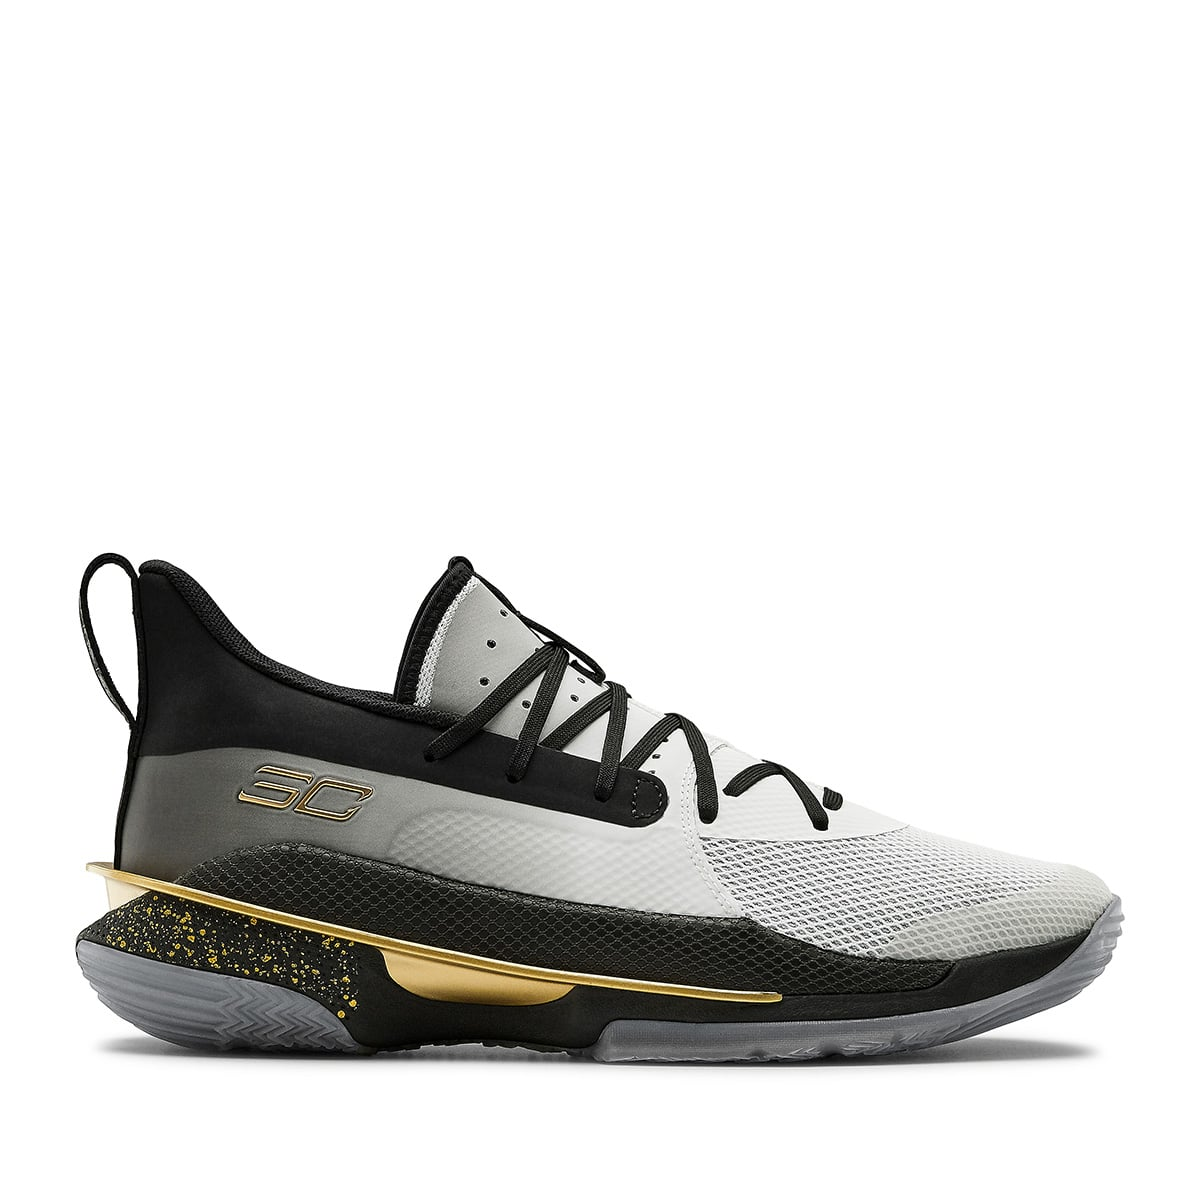 "UNDER ARMOUR Curry 7 ""FOR THE GAME"" WHITE/BLACK/GOLD 20SS-S_photo_large"